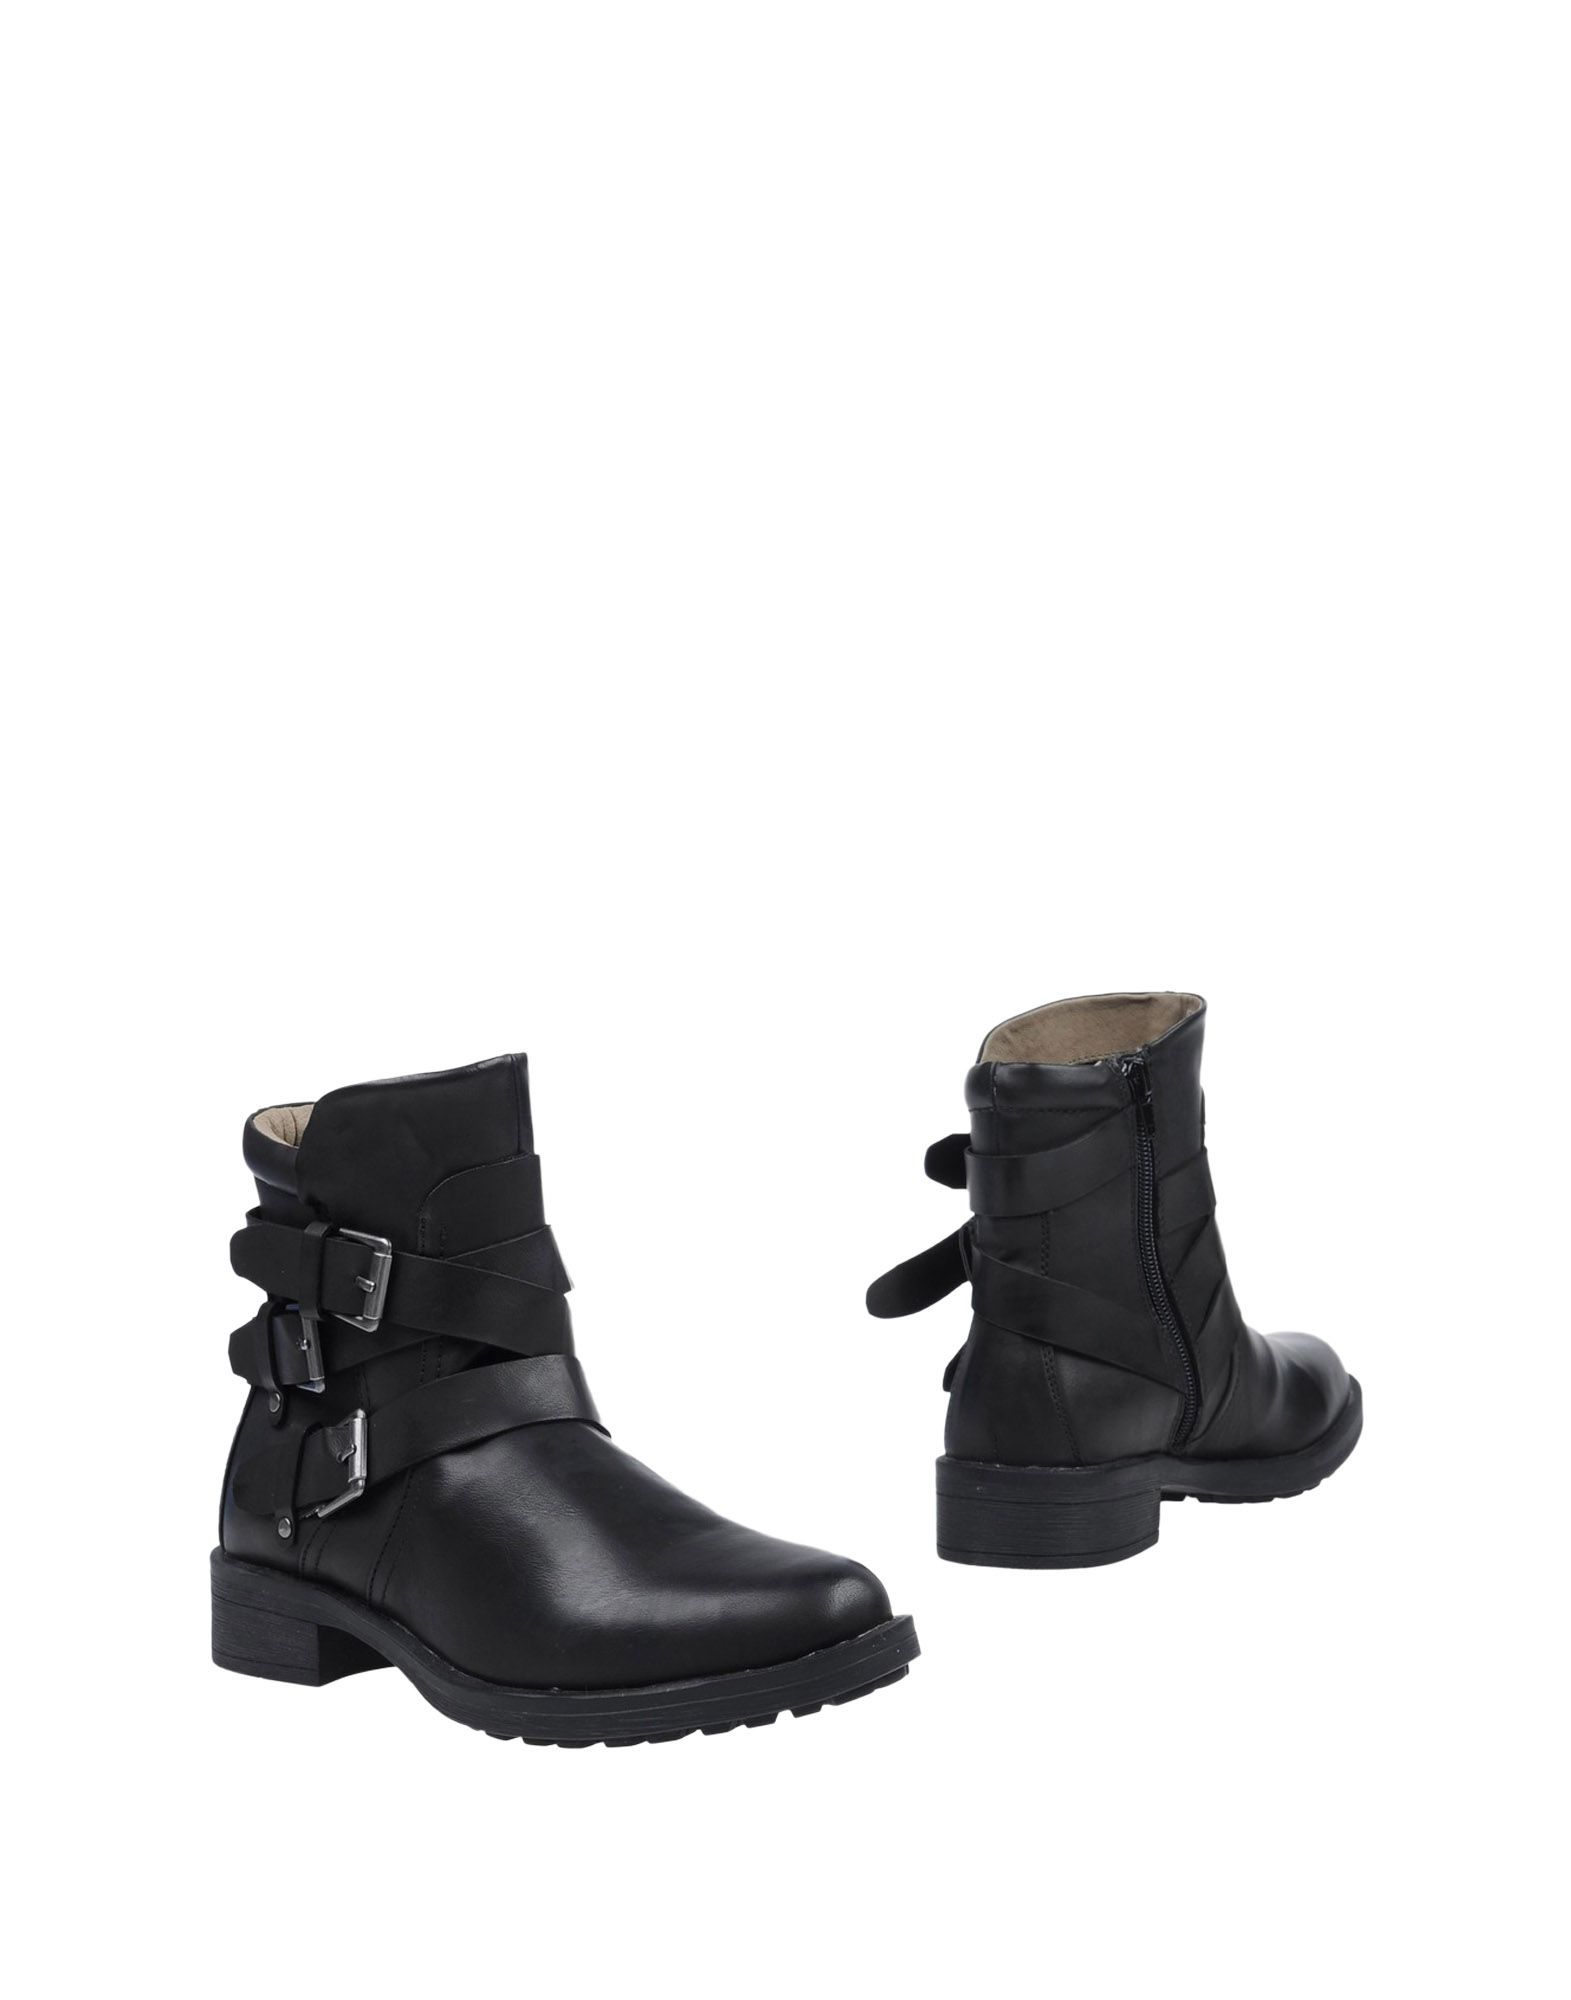 Vero Moda Ankle Boot - Women Vero on Moda Ankle Boots online on Vero  Australia - 11357671SF c1ac36